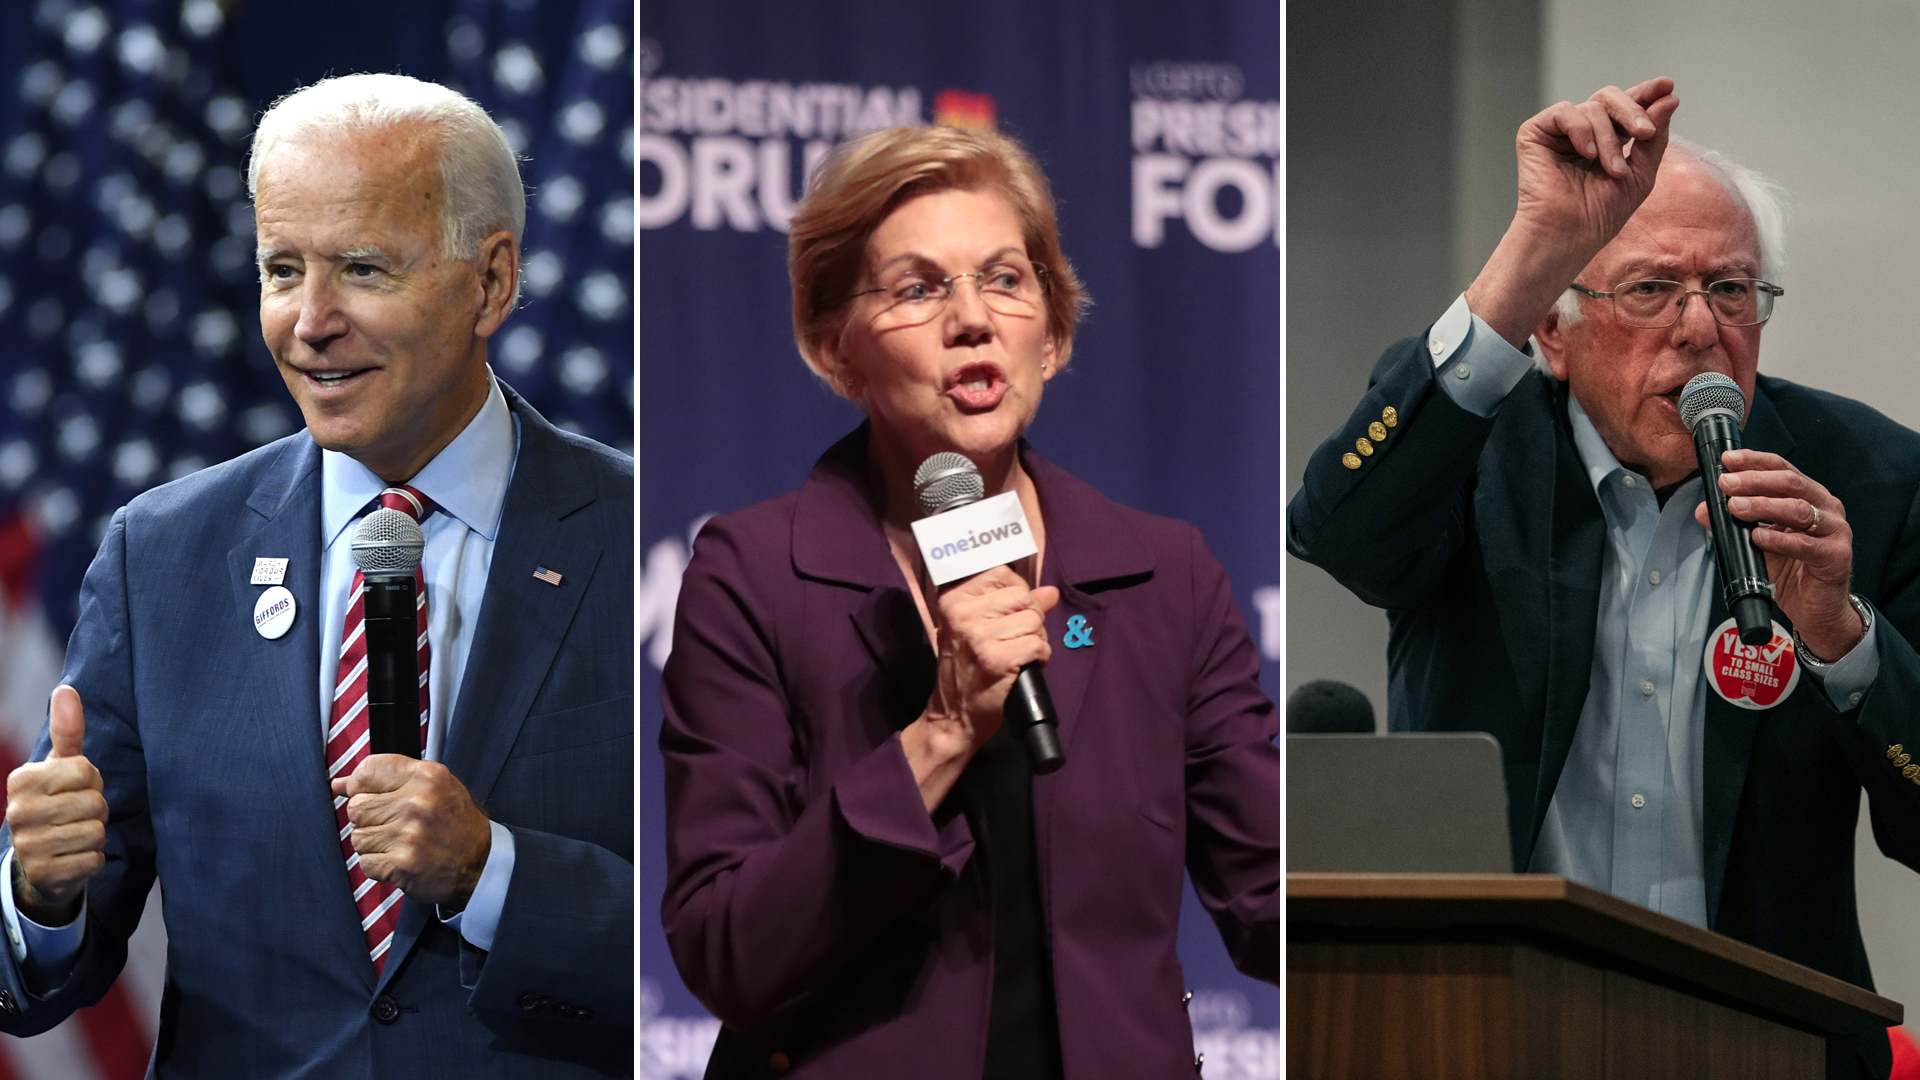 Joe Biden, Elizabeth Warren and Bernie Sanders are seen on the presidential campaign trail in 2019. (Credit: Getty Images)